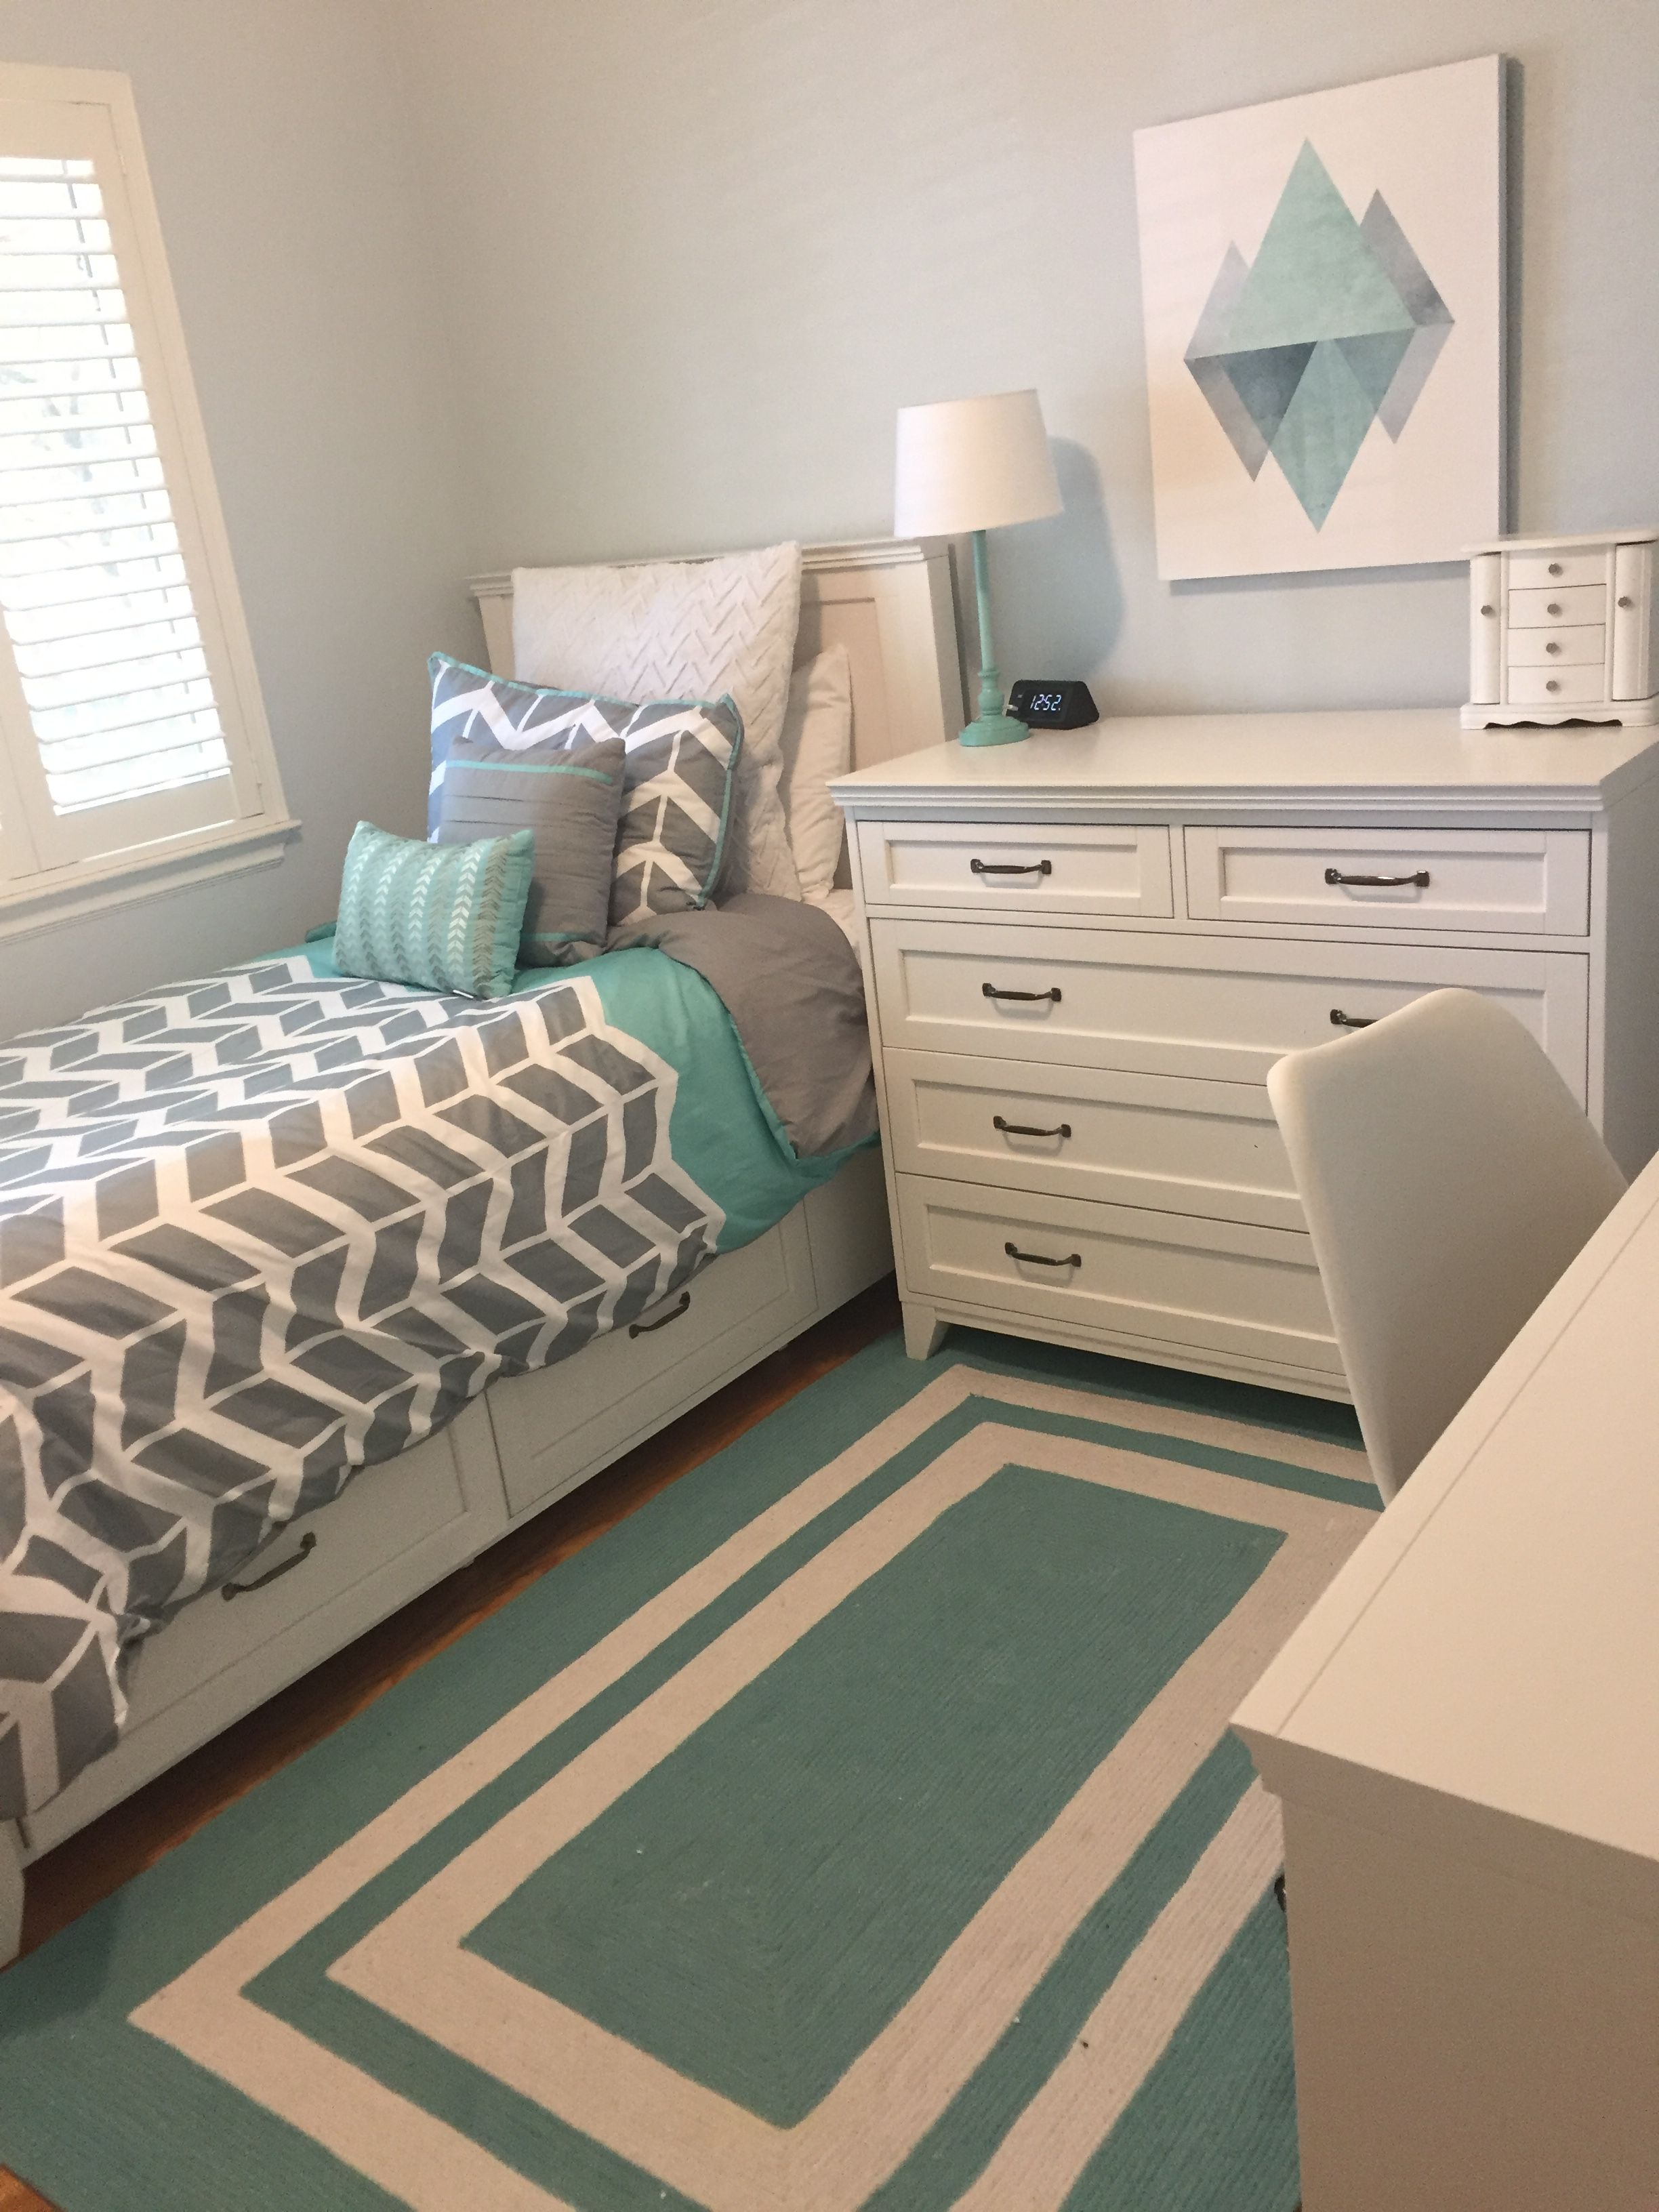 Teenage Small Bedroom Ideas My New Bedroom It 39s A Very Small Room But We Made It